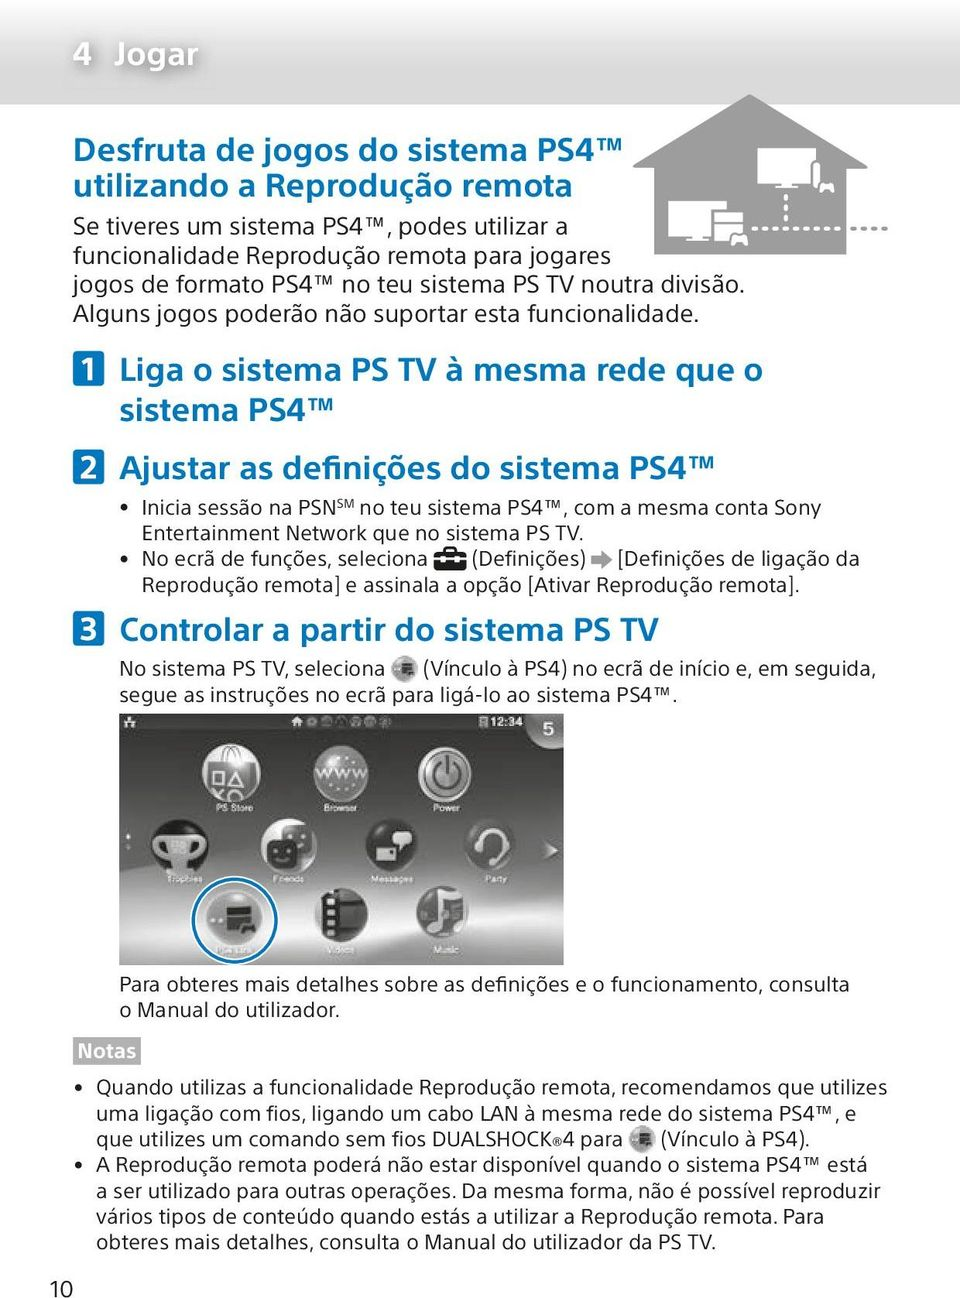 Liga o sistema PS TV à mesma rede que o sistema PS4 Ajustar as definições do sistema PS4 Inicia sessão na PSN SM no teu sistema PS4, com a mesma conta Sony Entertainment Network que no sistema PS TV.